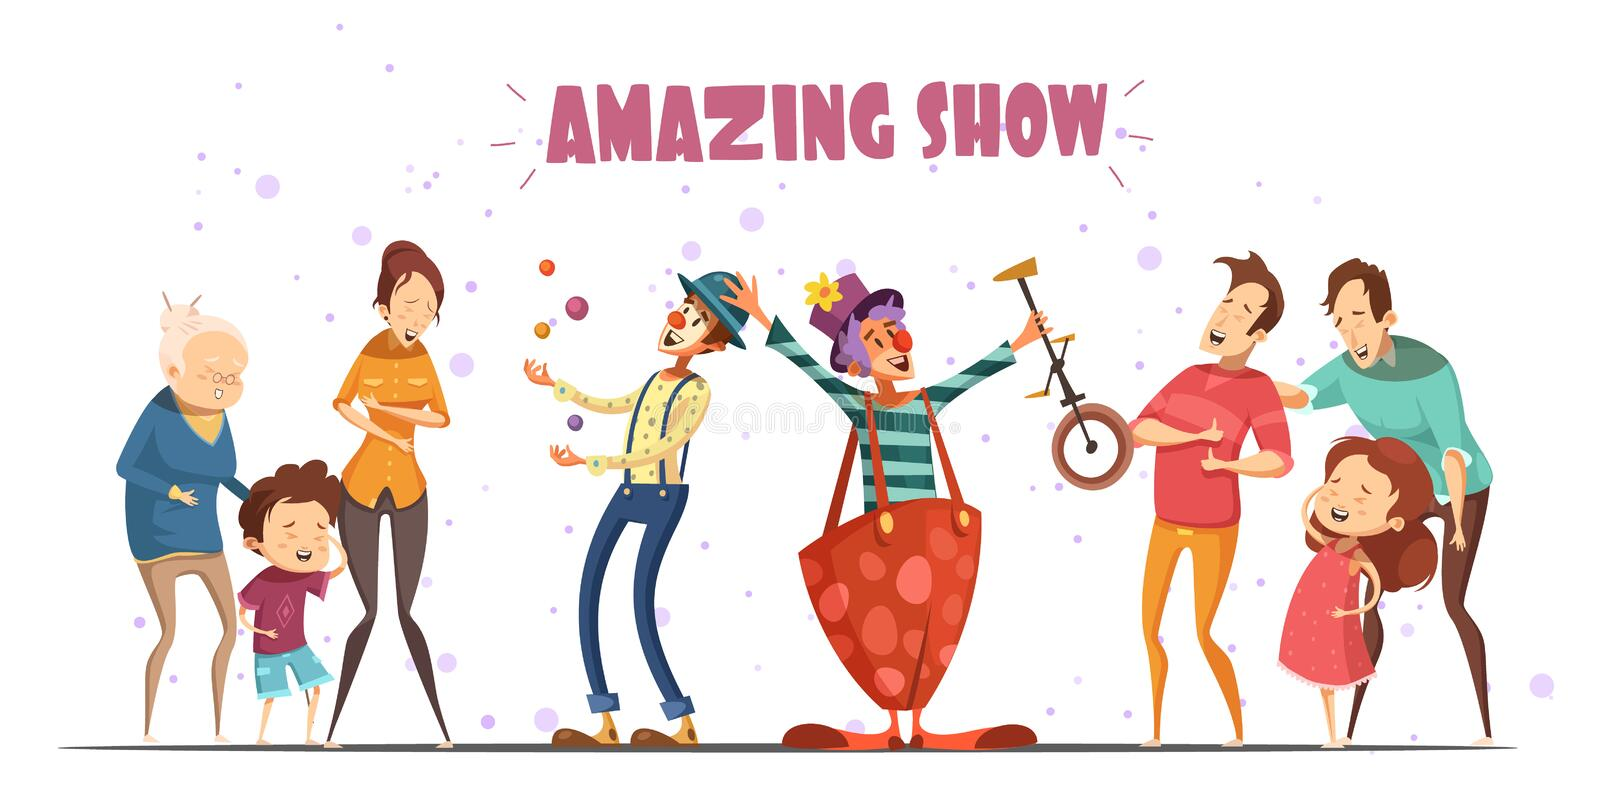 Amazing Show Laughing People Cartoon Illustration. Circle clowns amazing public show performance for hilarious laughing people with kids and grandparents retro royalty free illustration